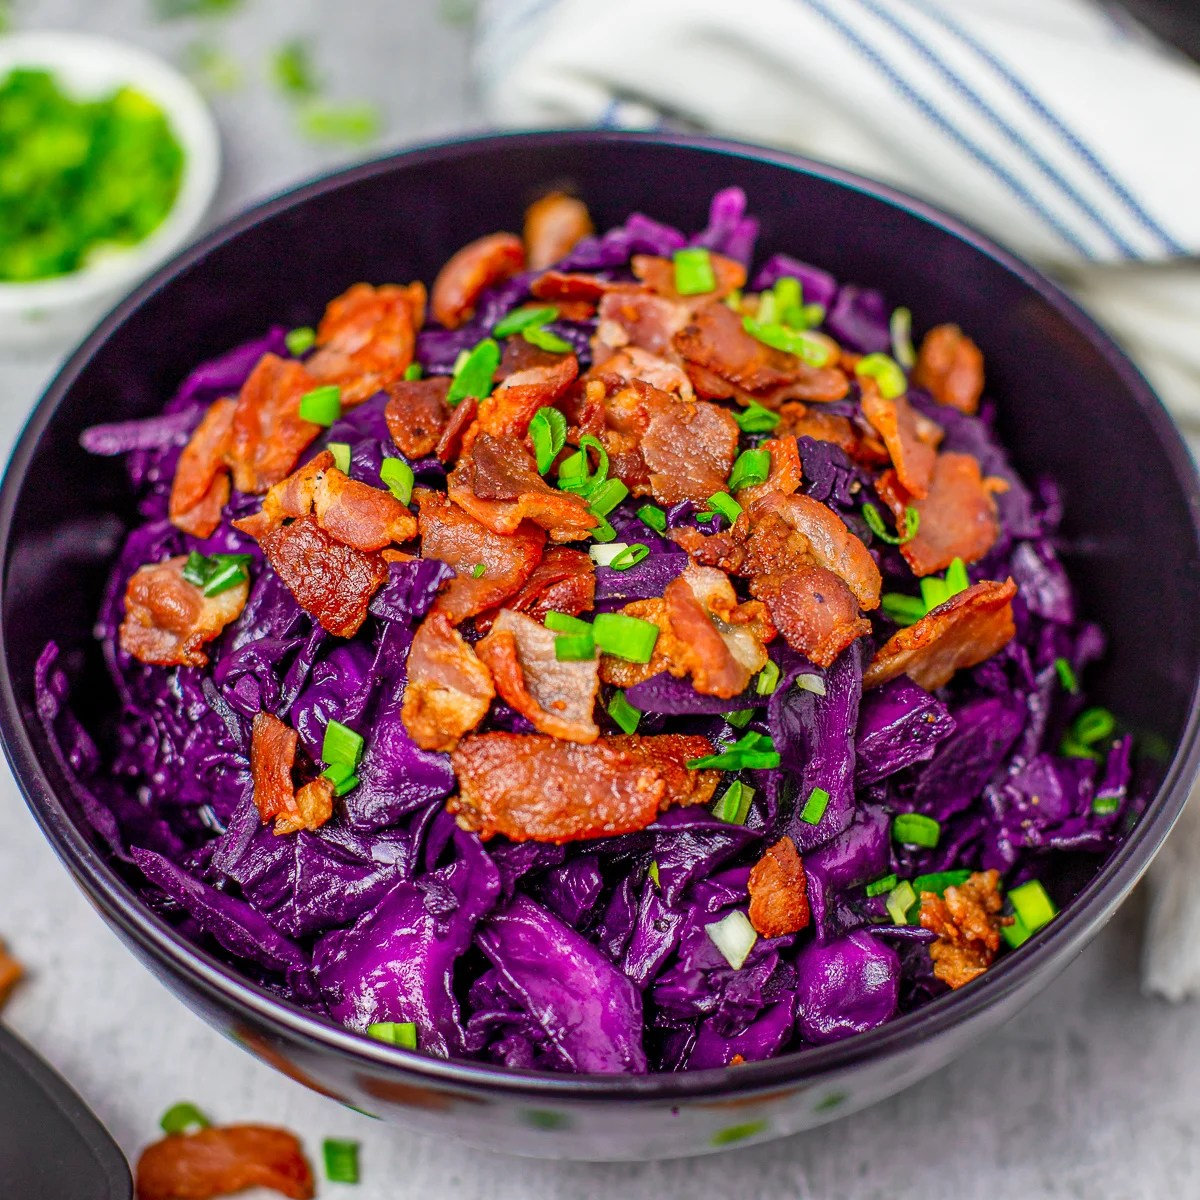 Square image of finished cabbage in bowl with bacon and scallionns.